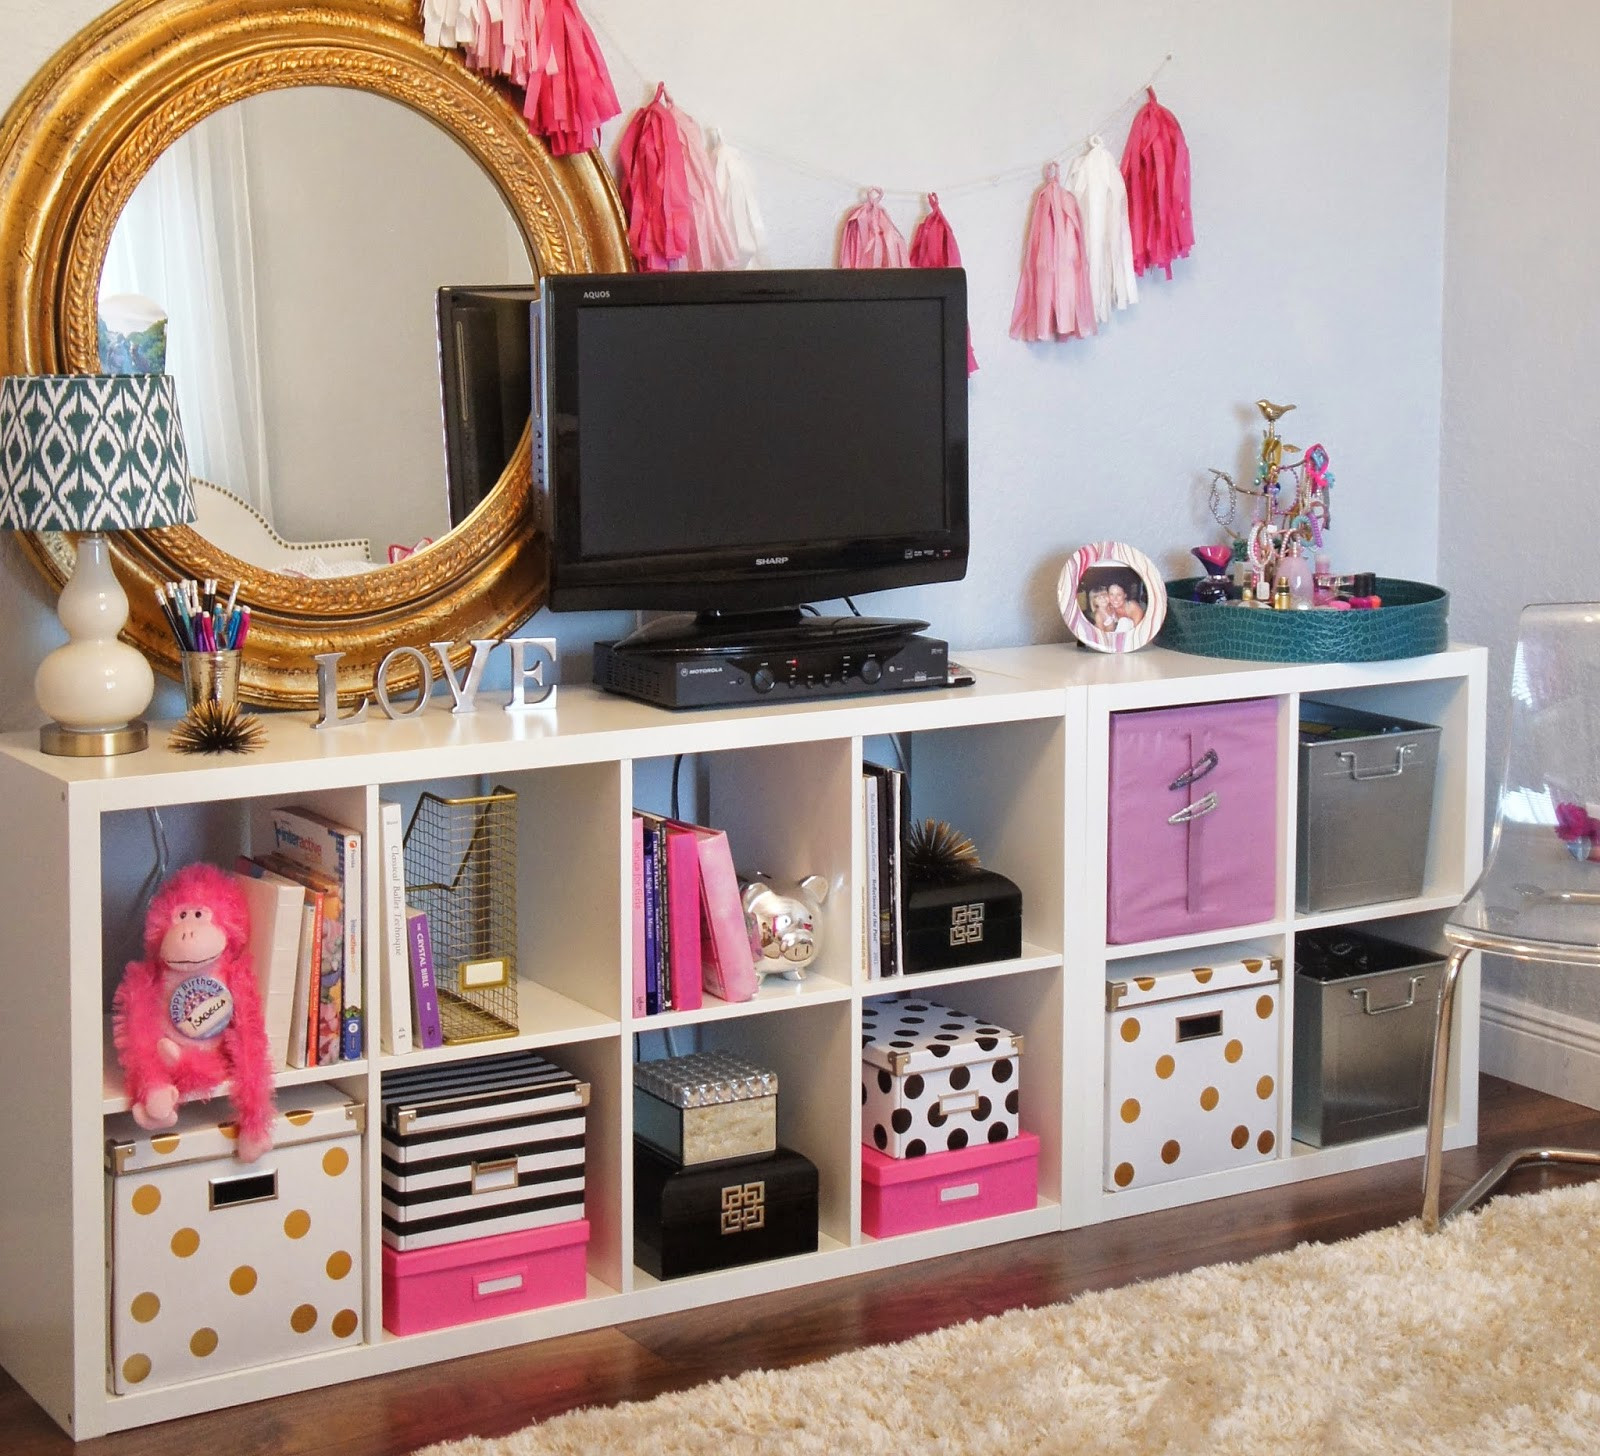 Best ideas about DIY Bedroom Organizers . Save or Pin The Cuban In My Coffee DIY Kate Spade Inspired Ikea Now.